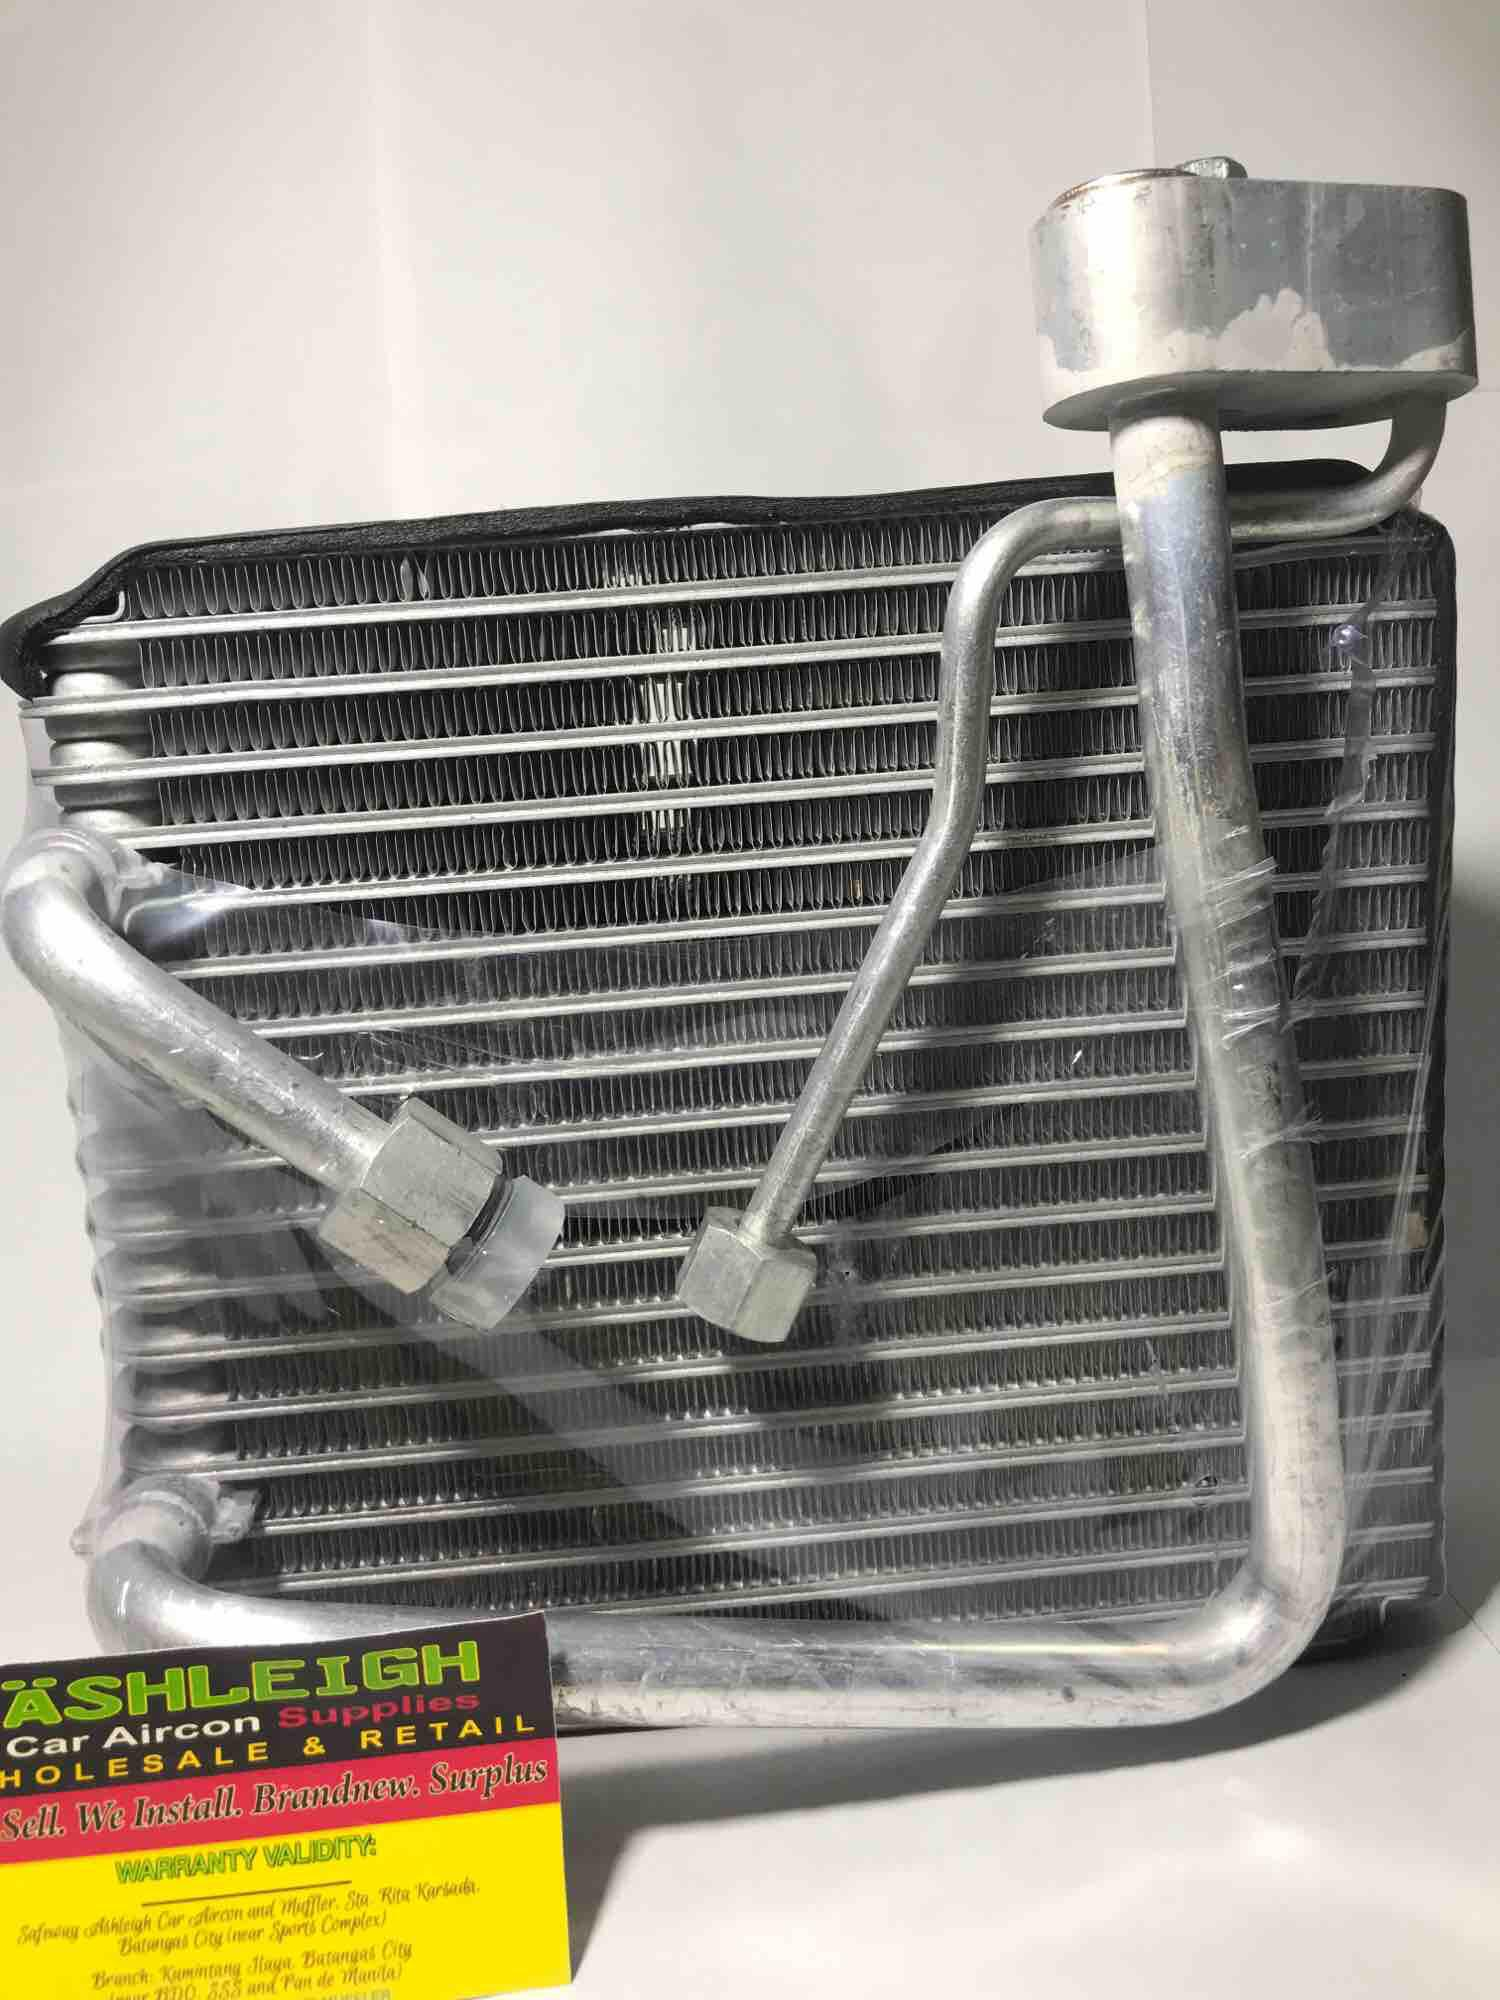 Car Air Conditioning for sale - Auto Air Conditioning online brands